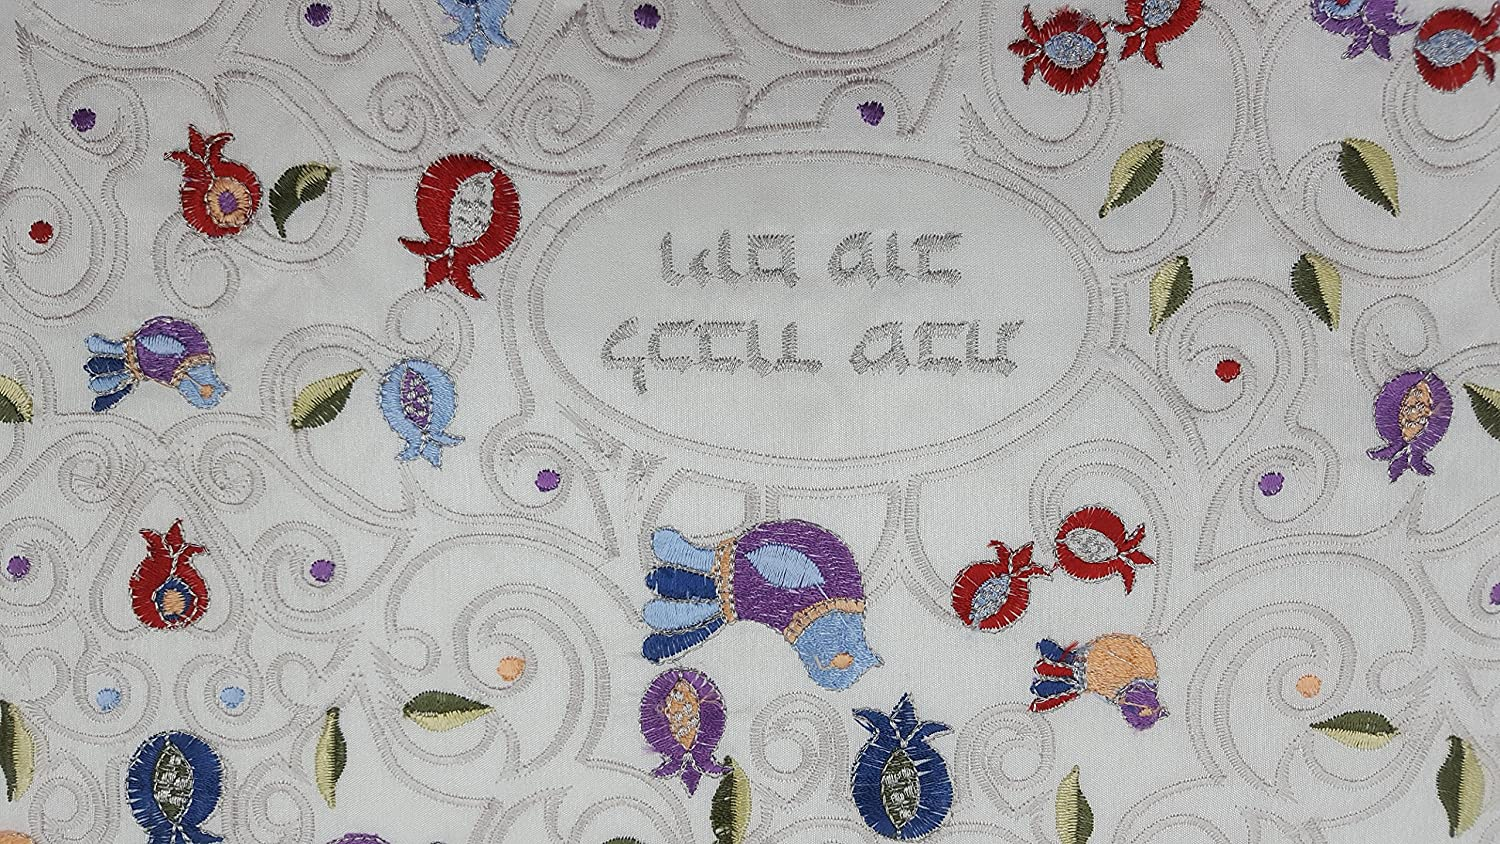 Shabbat Challah Cover Full Embroidered with Pomegranates /& Birds in Raw Silk Israel Judaica Gift